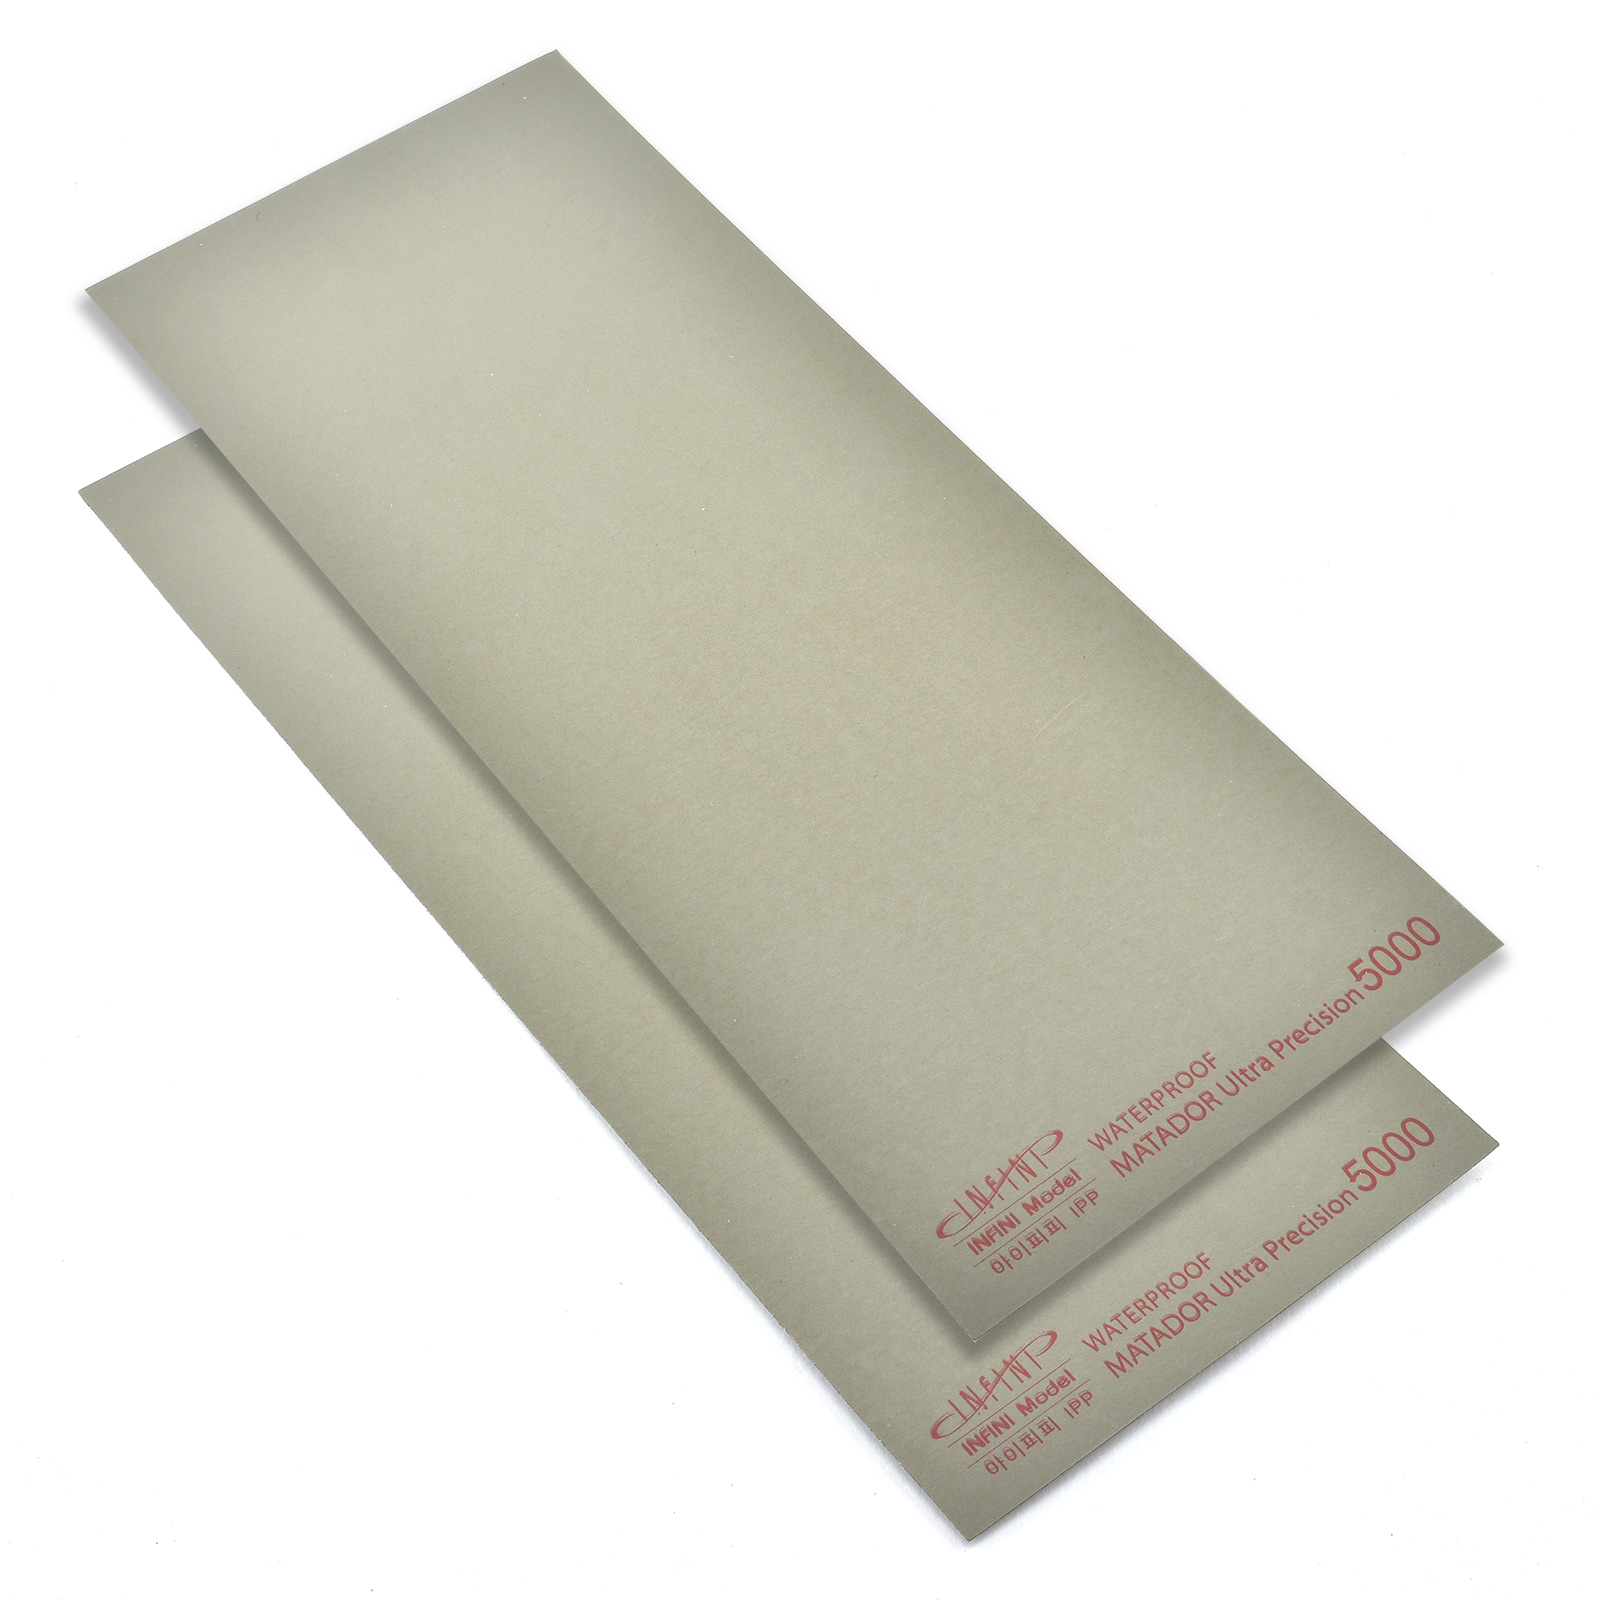 Sanding Sheet, 5000 Grit, Pack of 2